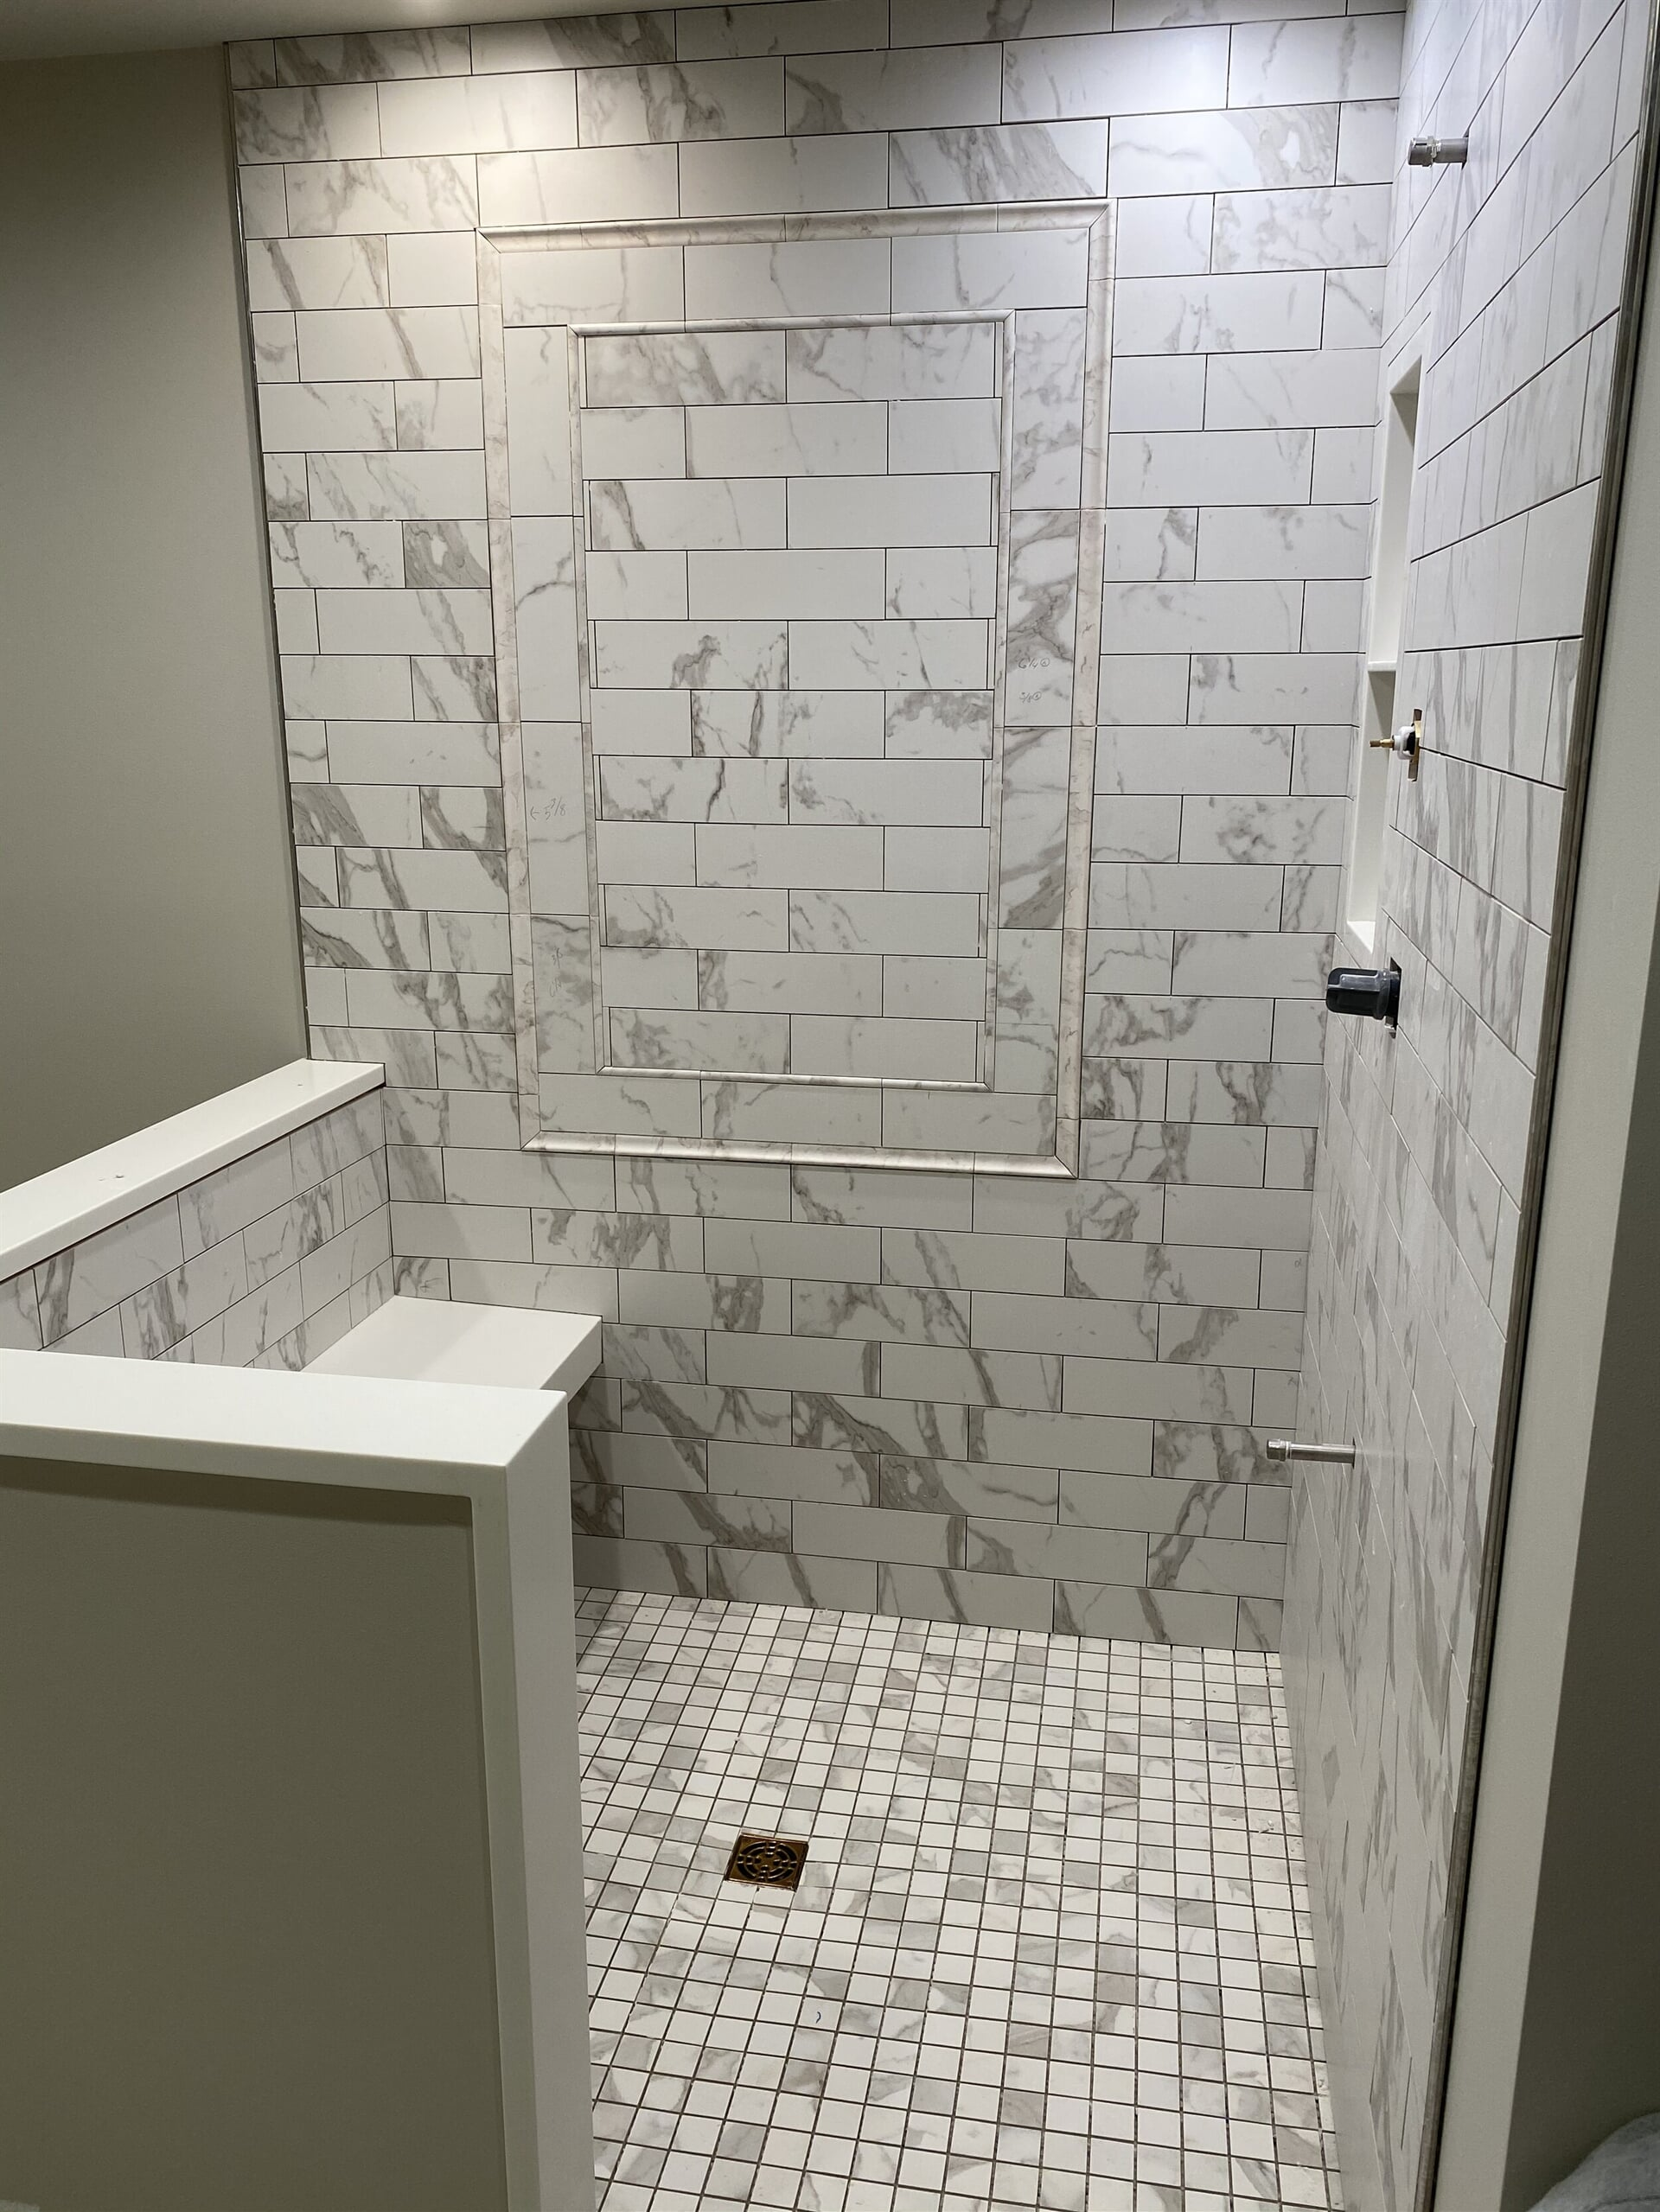 Marble subway tile shower in Pottstown, PA from Freedom Flooring